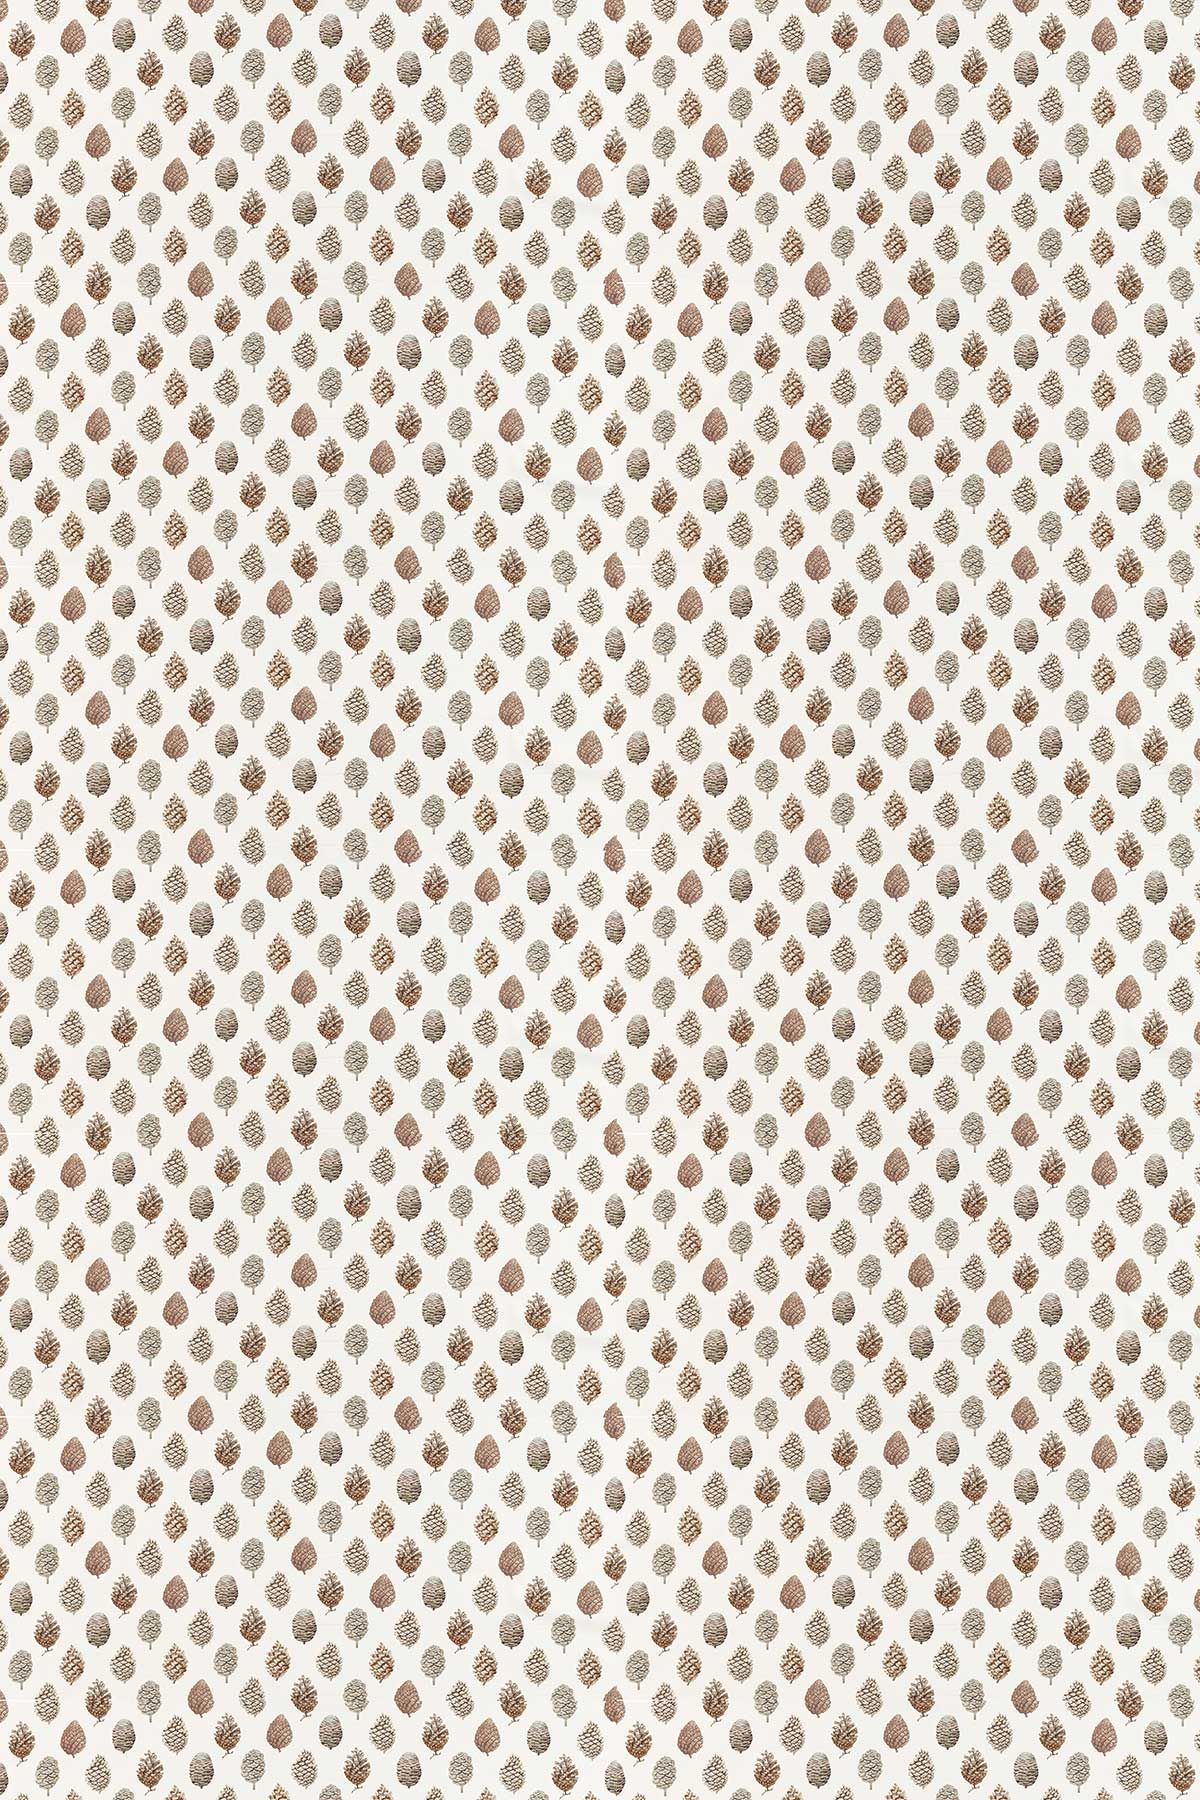 Pine Cones Fabric - Briarwood / Cream - by Sanderson